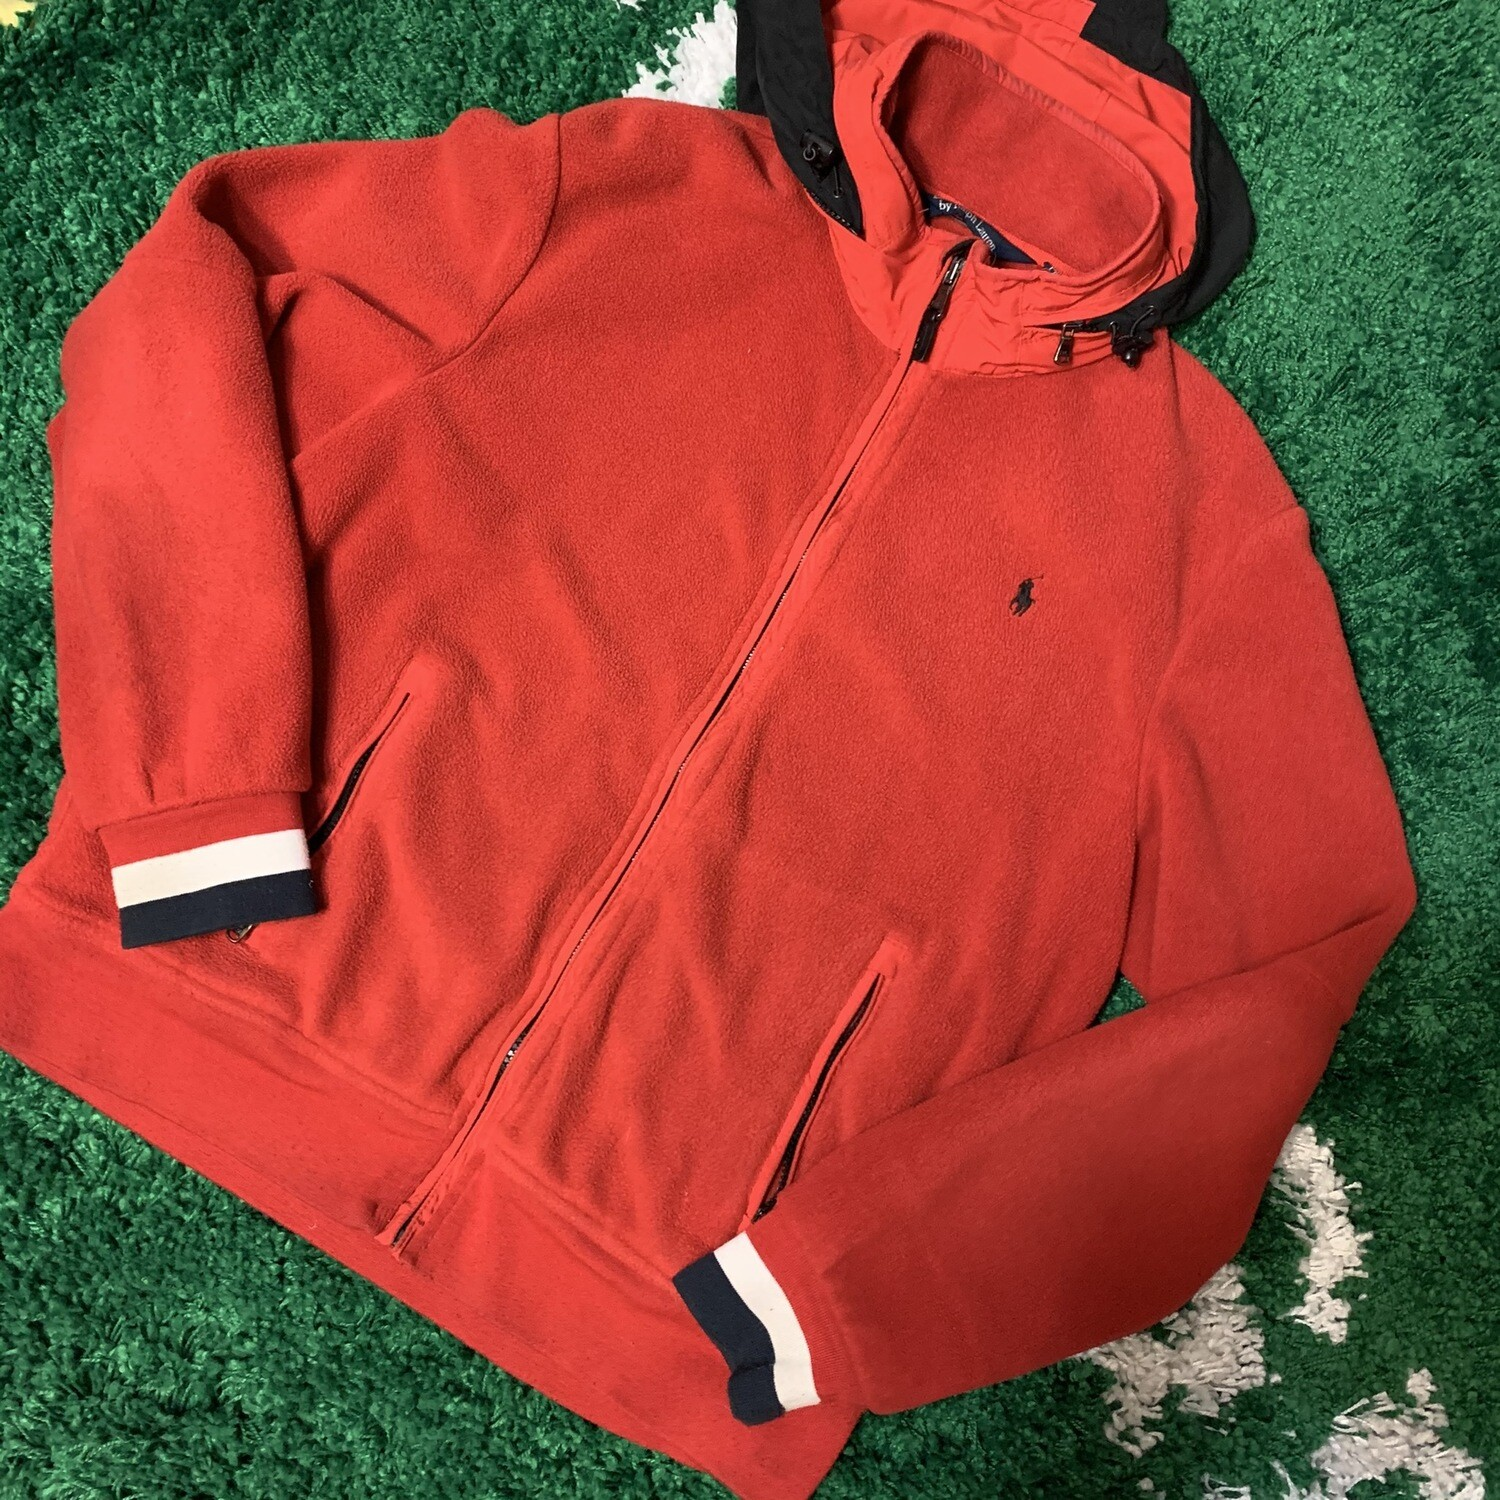 90s Polo Ralph Lauren Zip Up Fleece Size XL